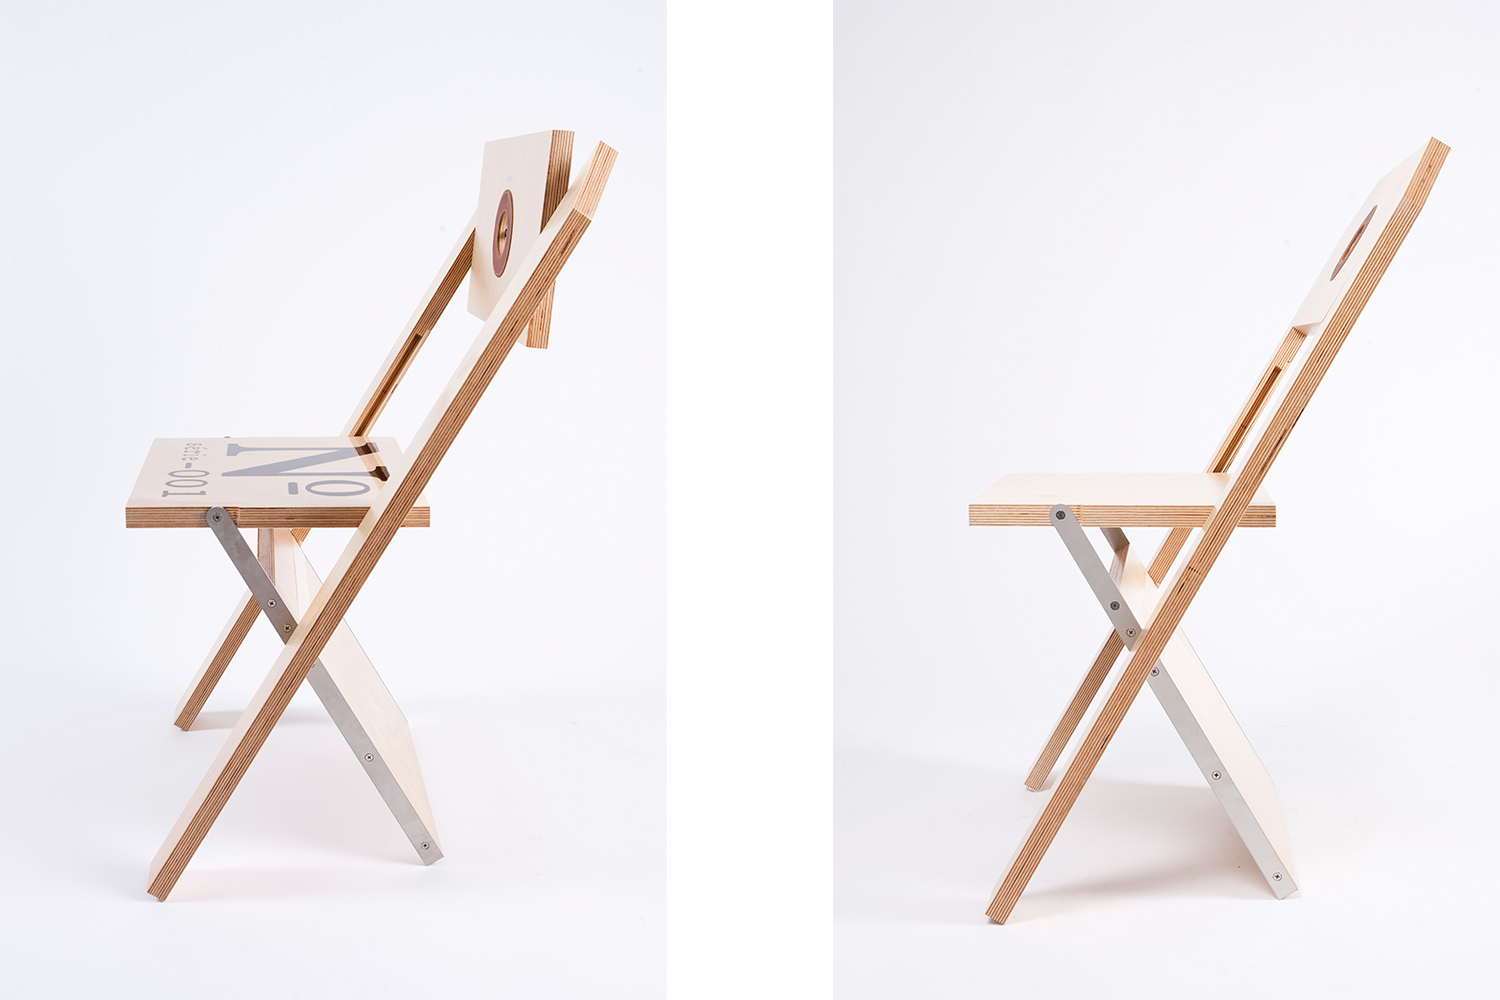 Side view of the folding chair, which is only one inch wide when folded in order to be easily stowed